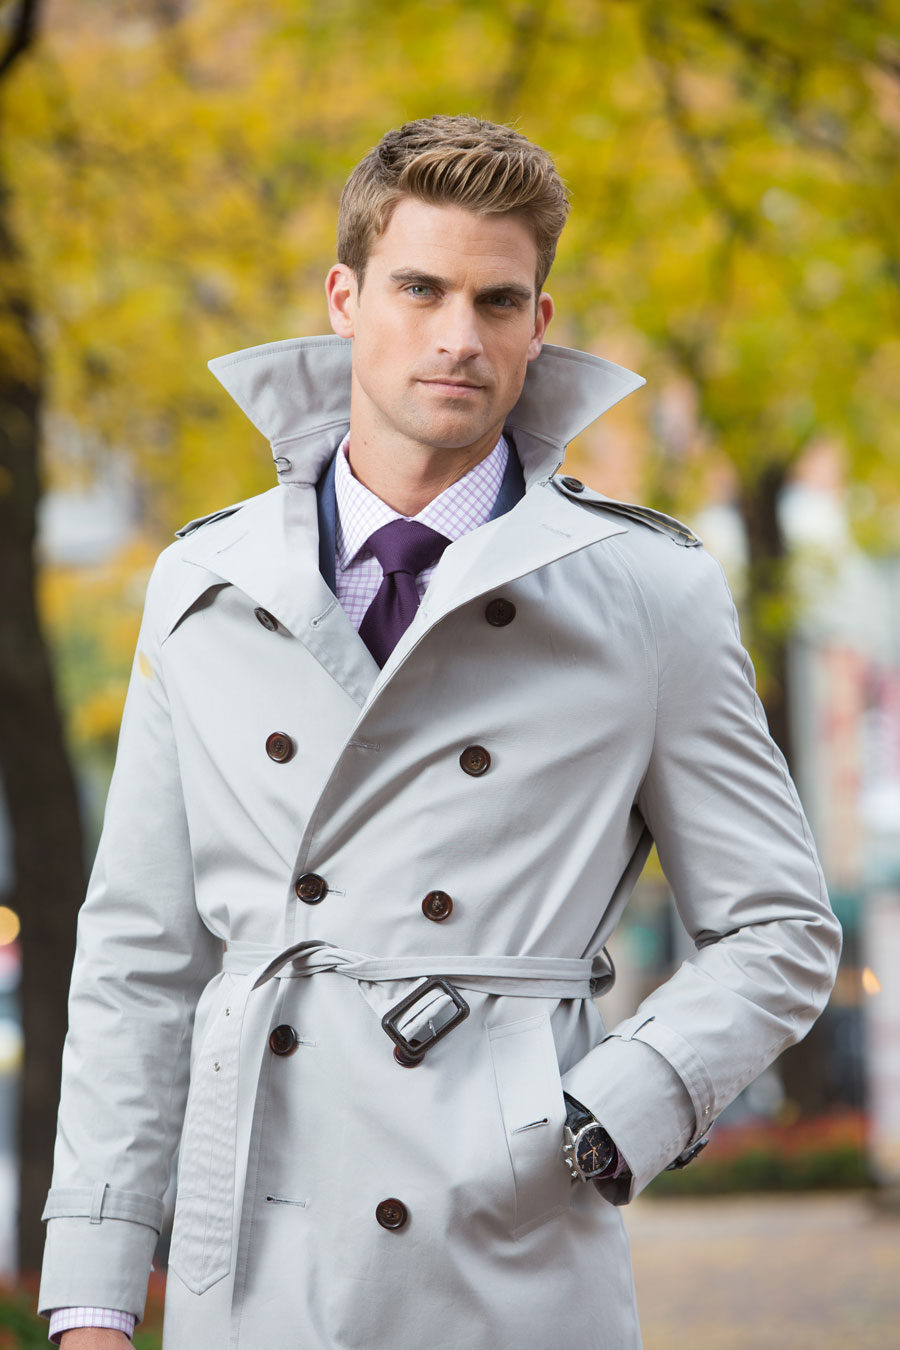 Grey-Double-breasted-Custom-Trenchcoat-Outerwear-Tailormade-Lavender-Checked-Shirt-Purple-Tie-Fall-Leaves-Balani-Chicago-900.jpg